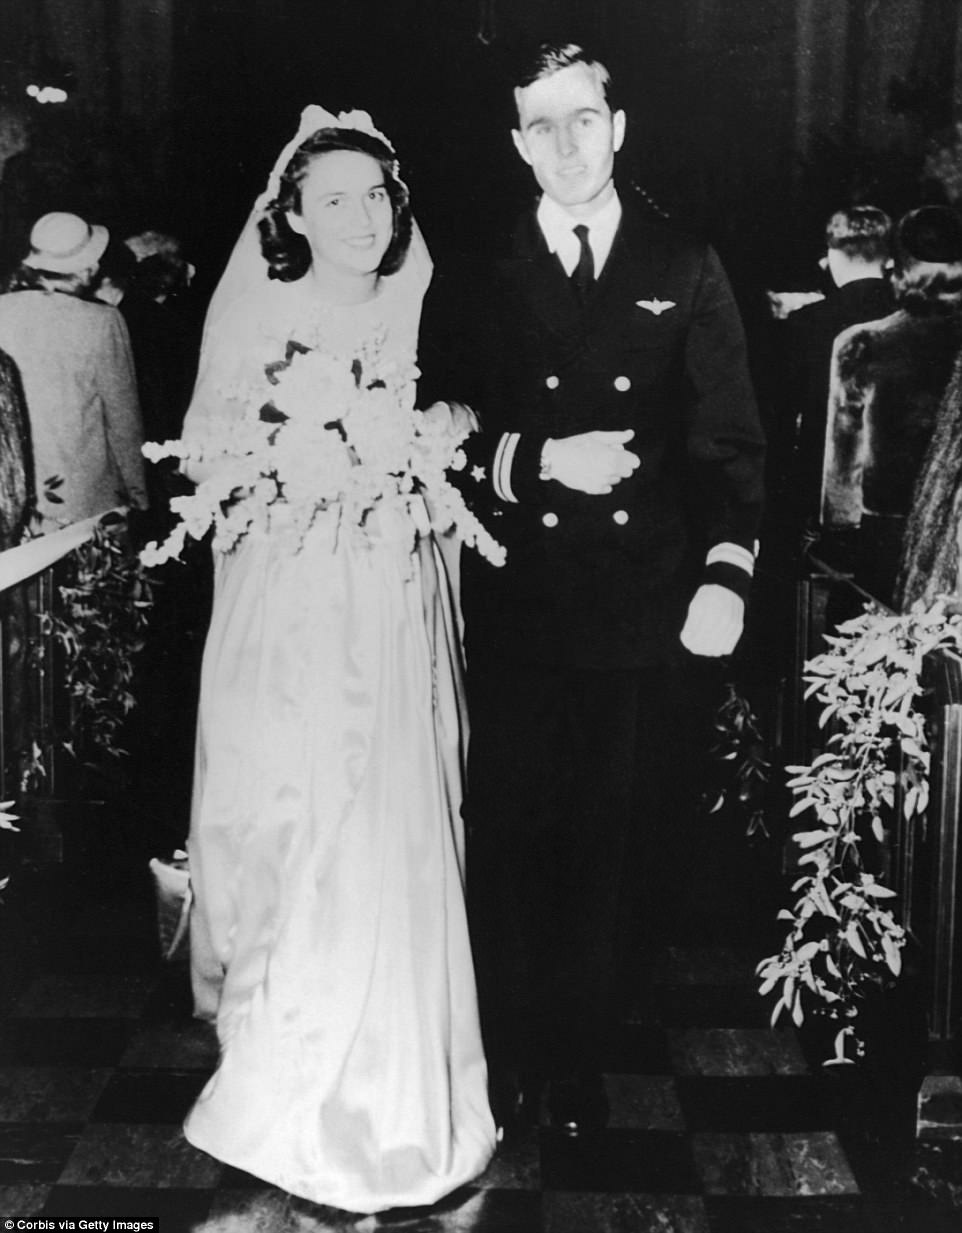 The Serious Side - part 6 - Page 4 4B3133A800000578-5627825-Barbara_and_George_H_W_Bush_married_in_January_1945_at_the_First-a-51_1524012601816